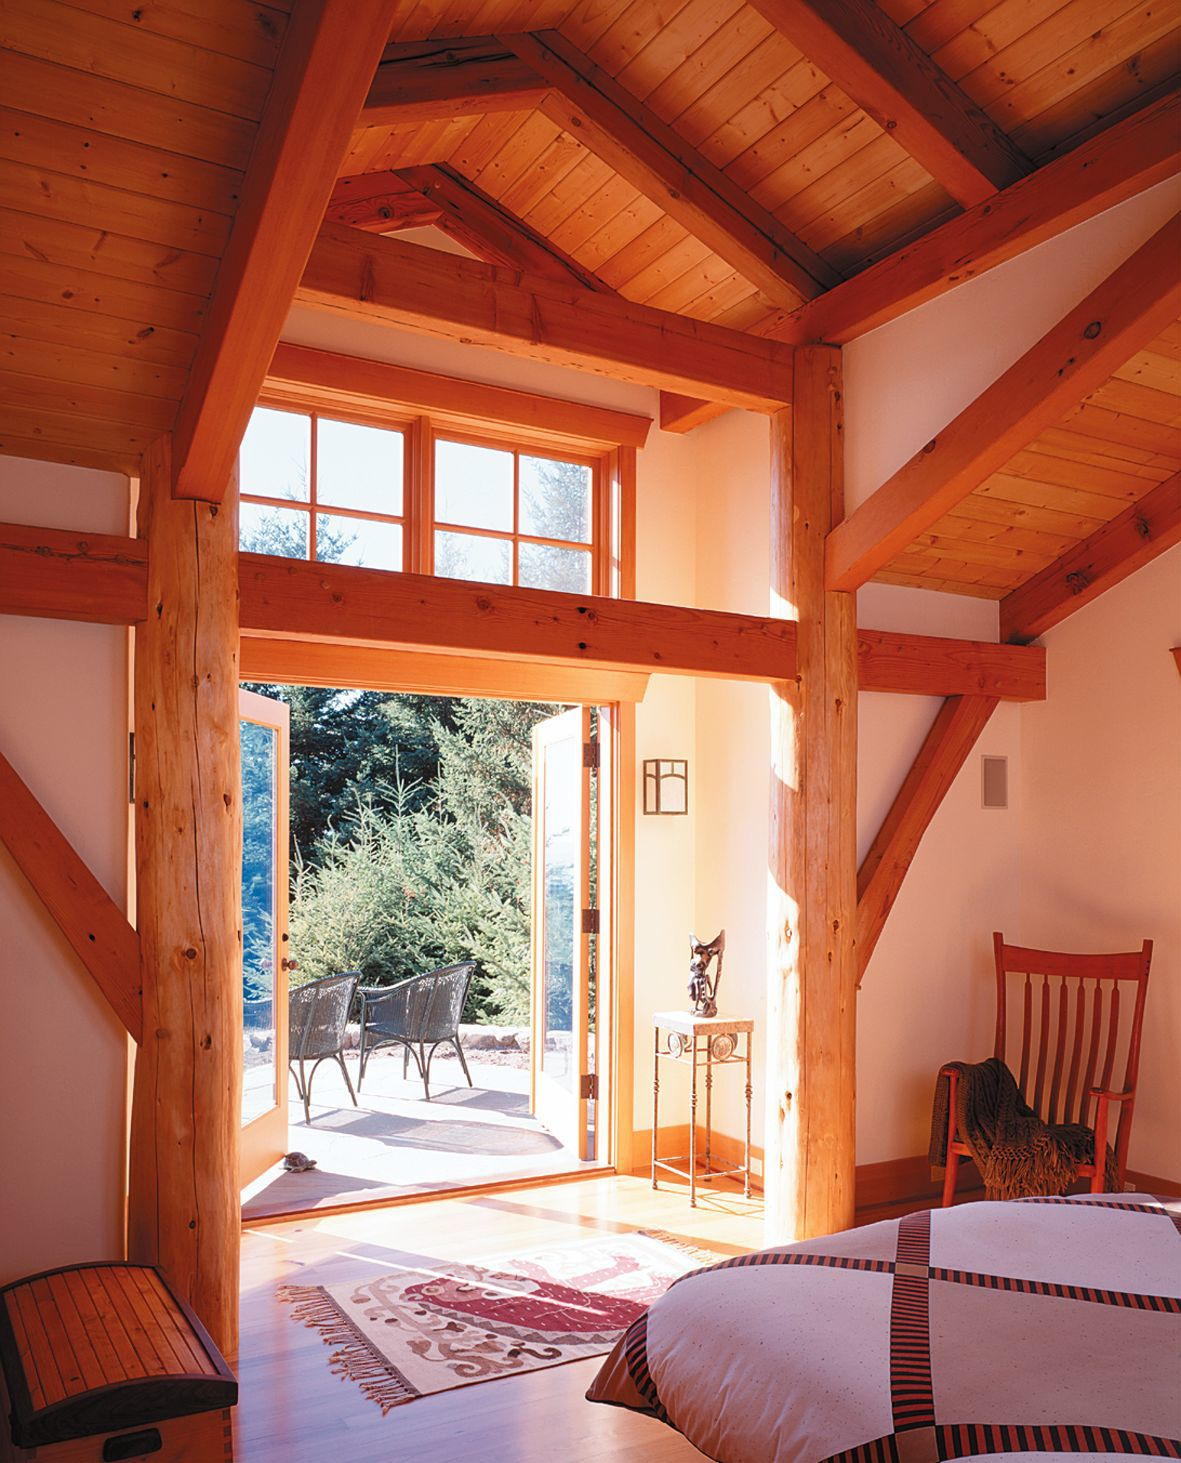 Timber Frame and Log Home — Greg Robinson Architect on contemporary kitchen ideas, ranch kitchen ideas, floor kitchen ideas, easy outdoor kitchen ideas, building kitchen ideas, steel kitchen ideas, cabin kitchen island ideas, do it yourself kitchen ideas, concrete kitchen ideas, glass kitchen ideas, timber frame kitchen cabinets, post and beam kitchen ideas, furniture kitchen ideas, log cabin kitchen ideas, new build kitchen ideas, adobe kitchen ideas, windows kitchen ideas, studio kitchen ideas, timber frame kitchen plans, brick kitchen ideas,